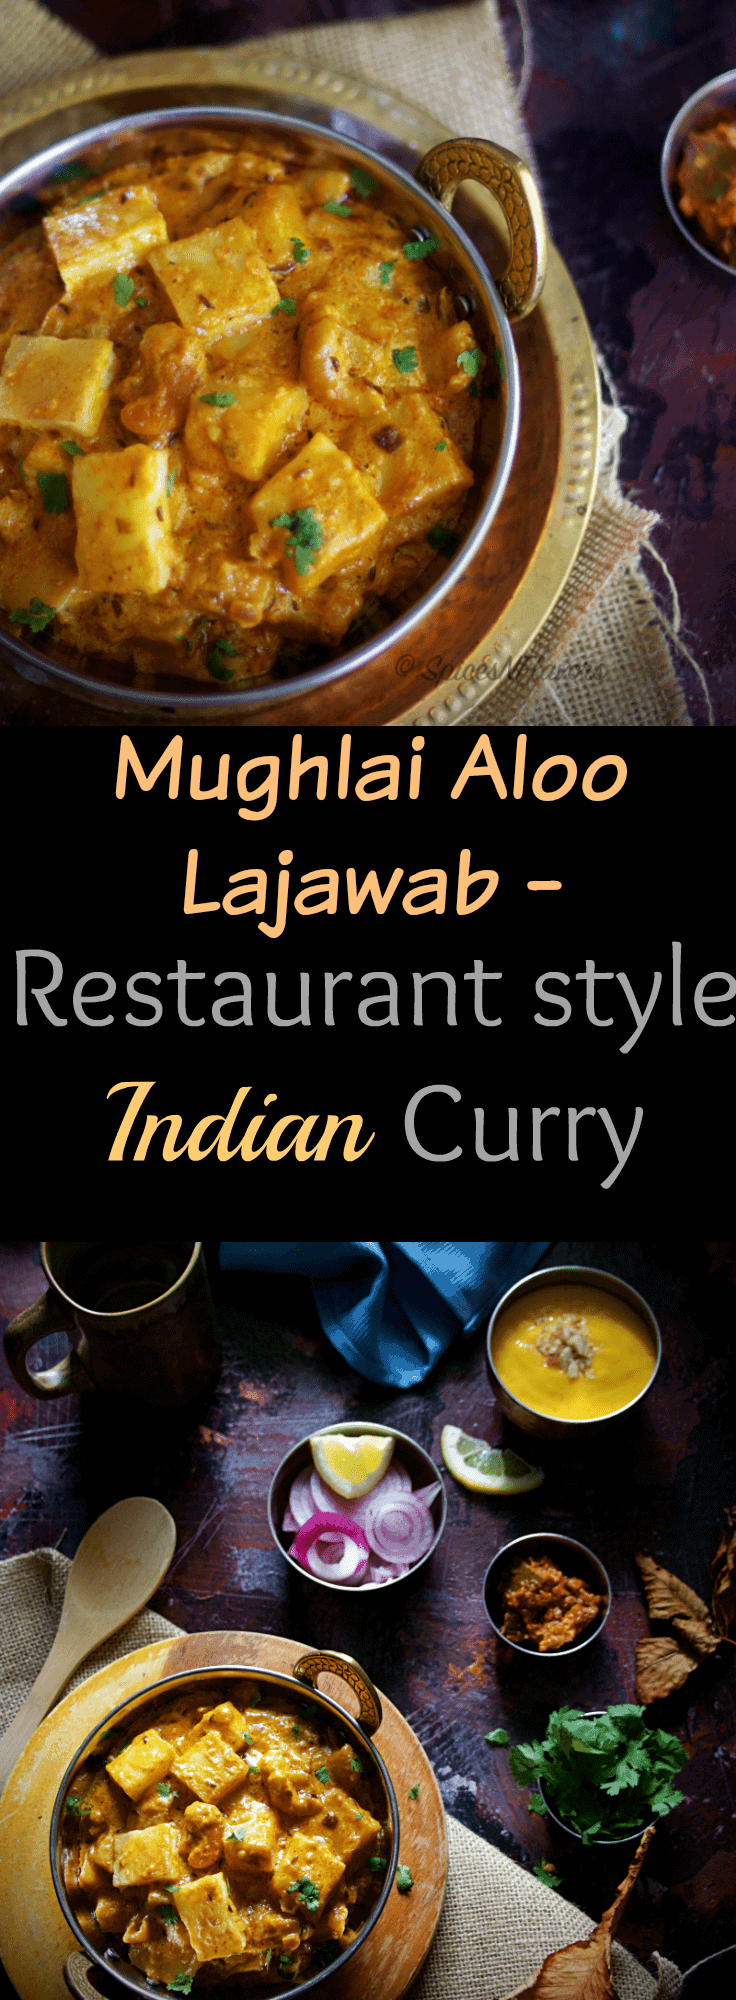 mughlai-aloo-lajawab-restaurant-style-indian-curry exotic flavourful gravy photography